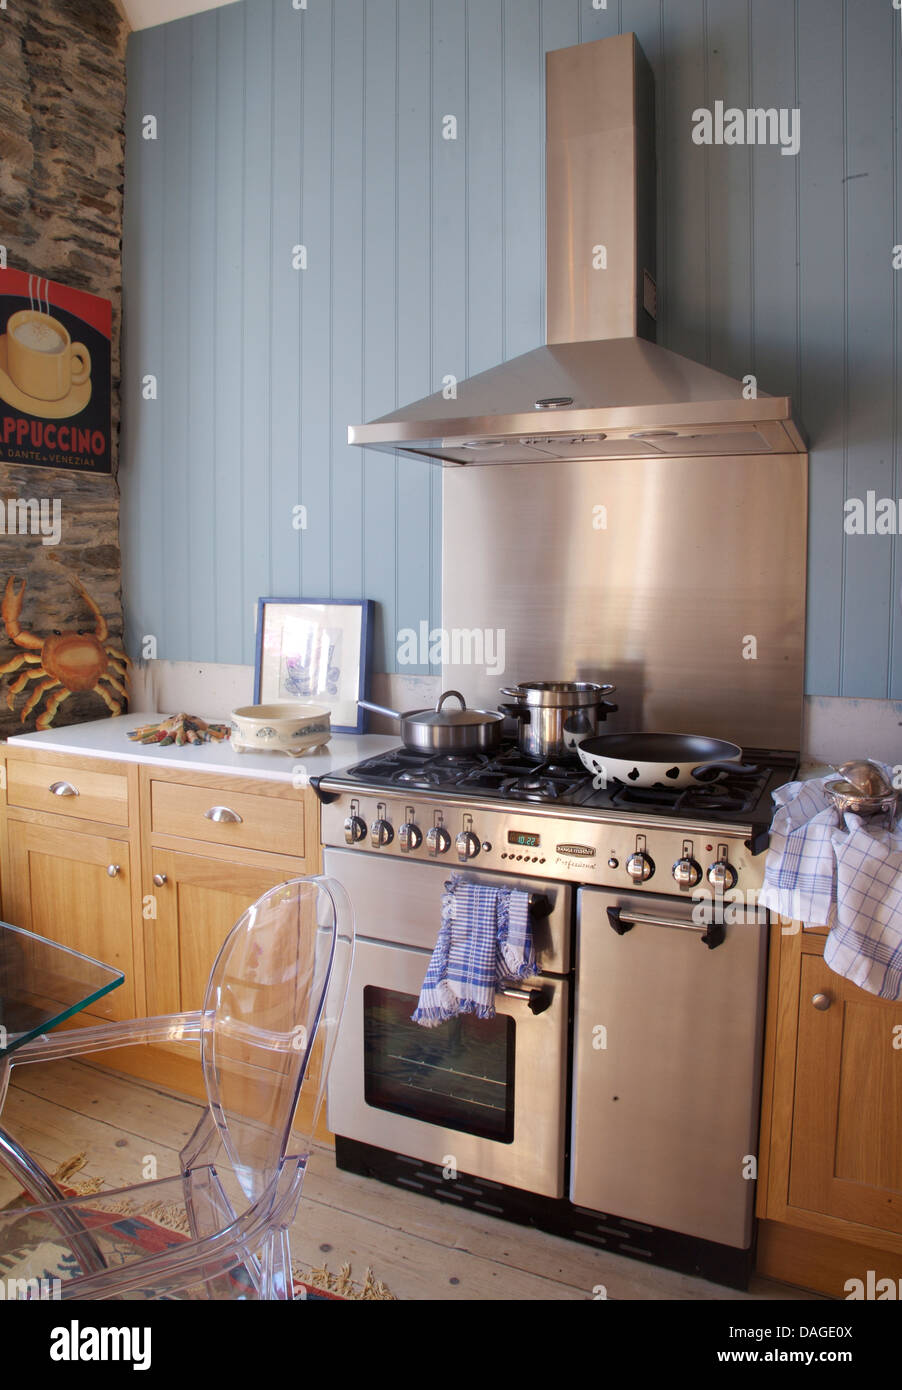 Kitchen Extractor White Hood